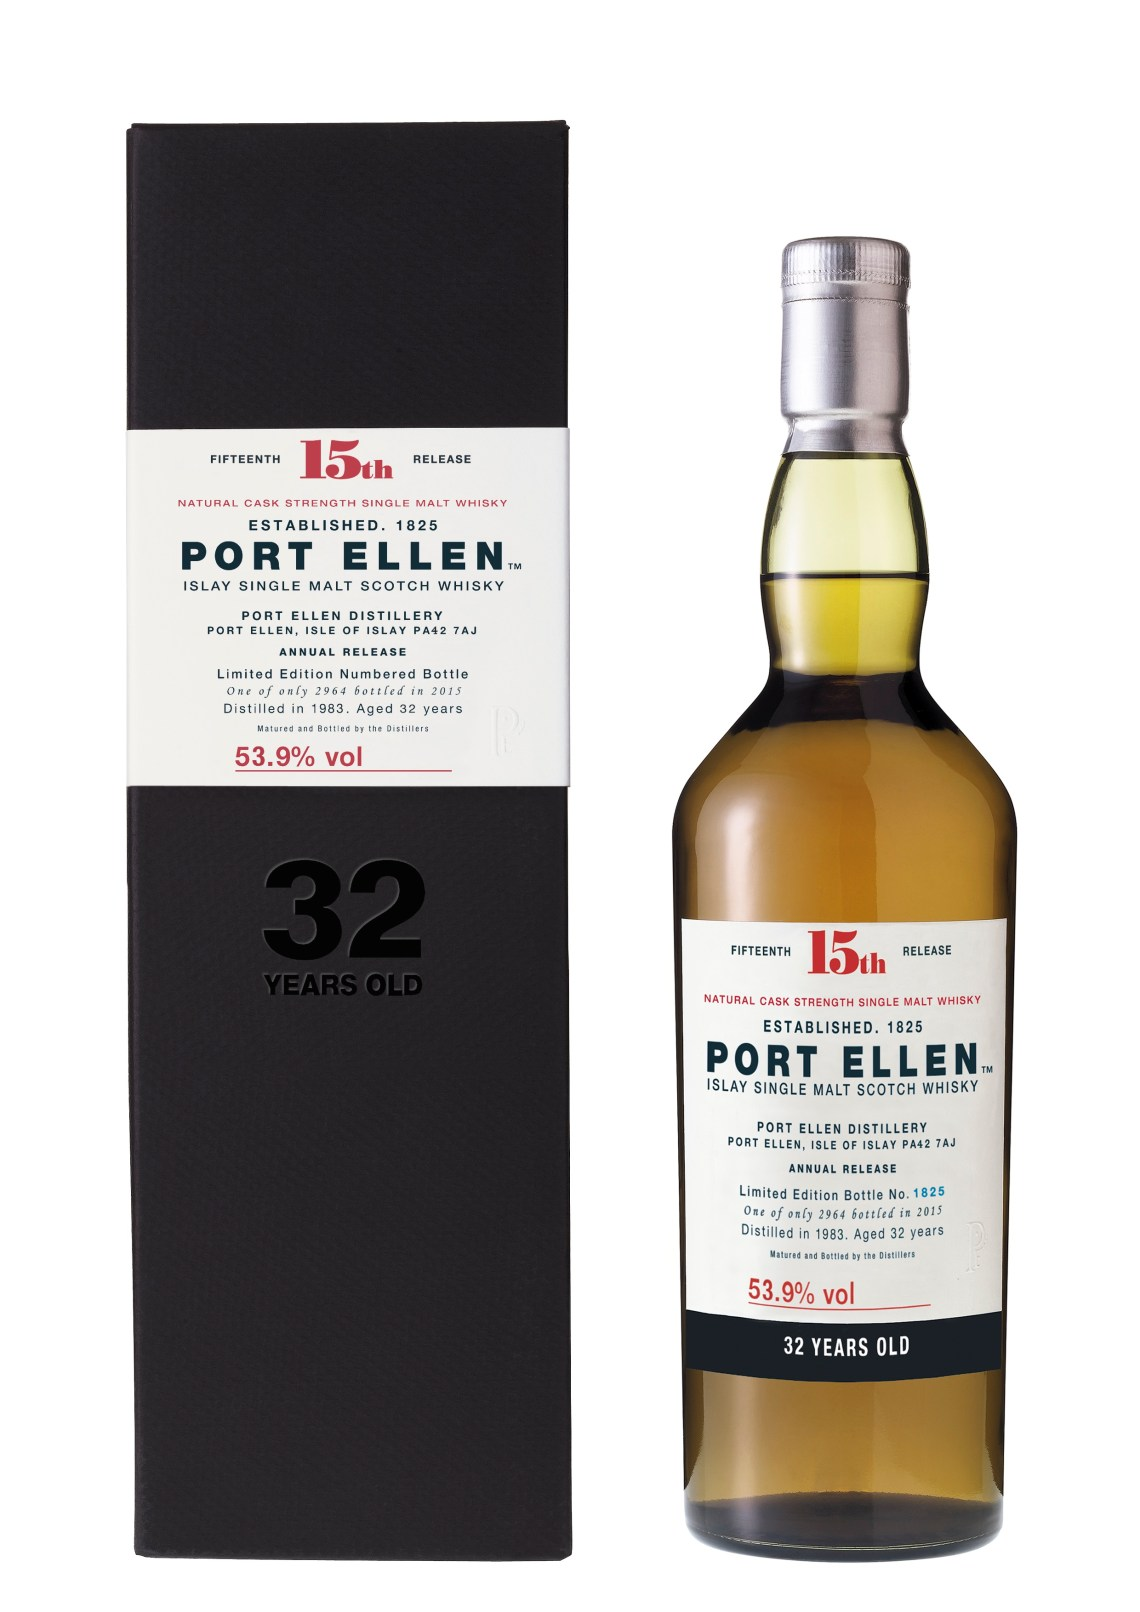 Port Ellen 32 Years Old Limited Edition 2015